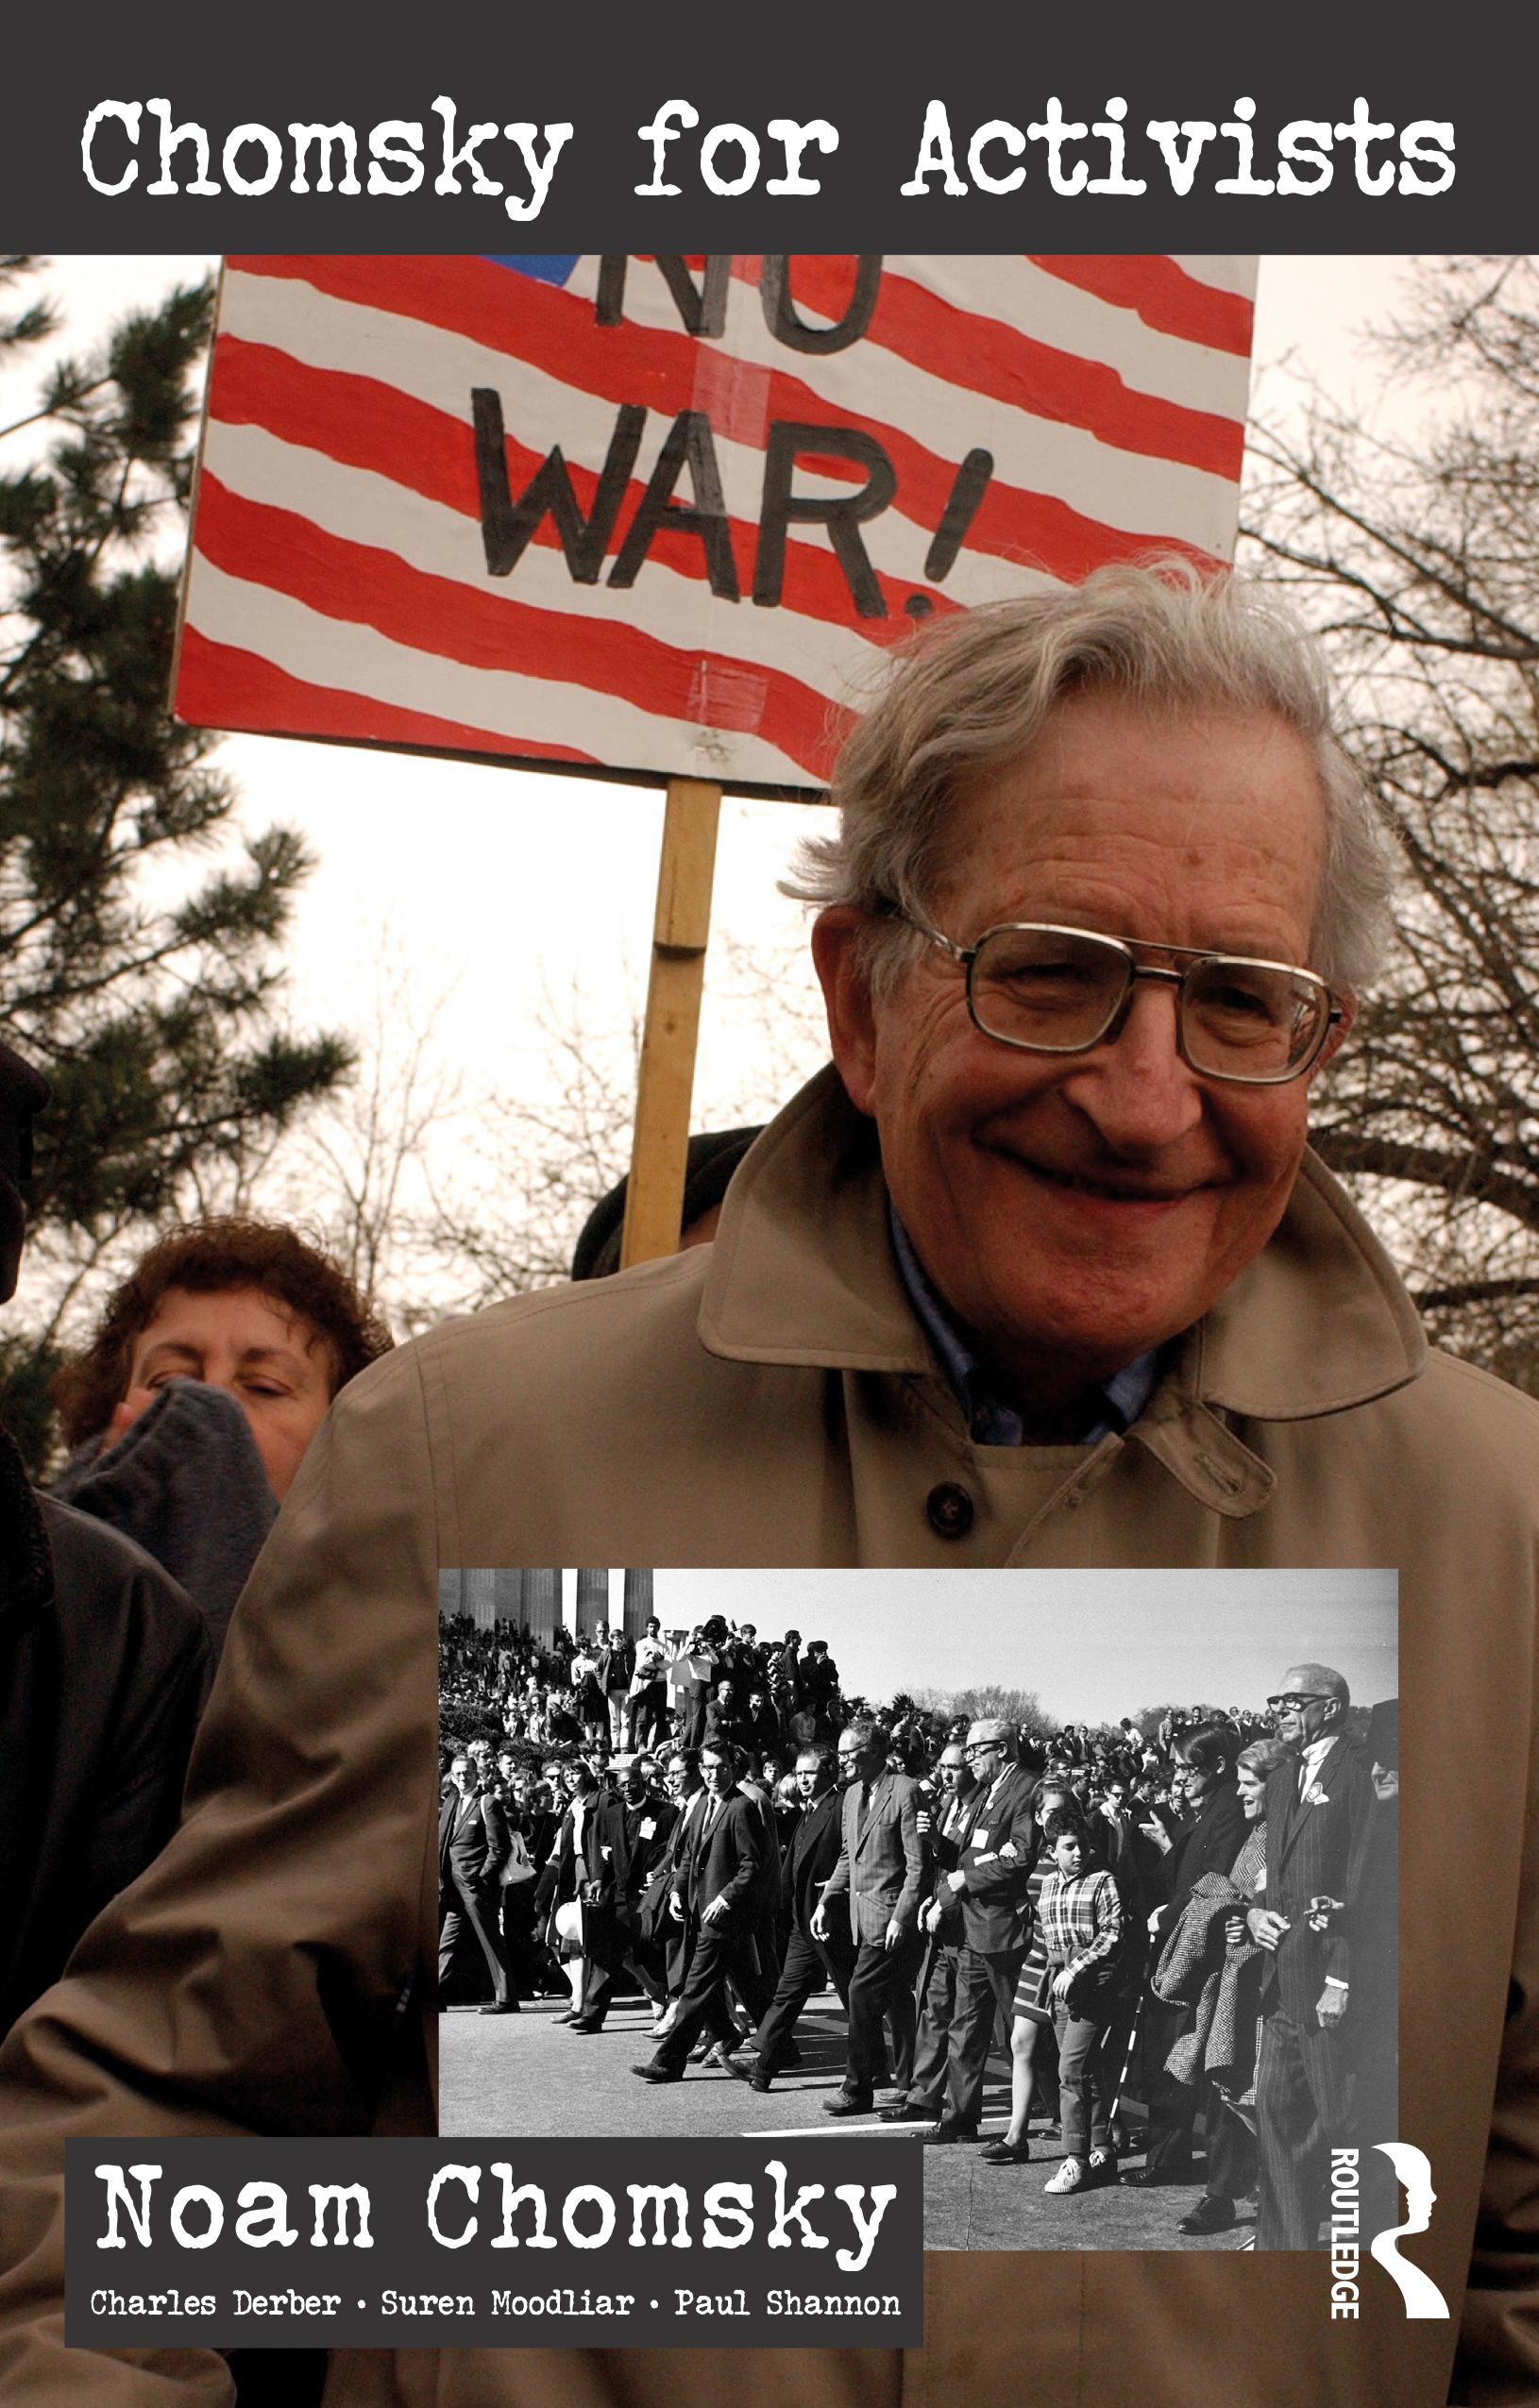 Chomsky for Activists